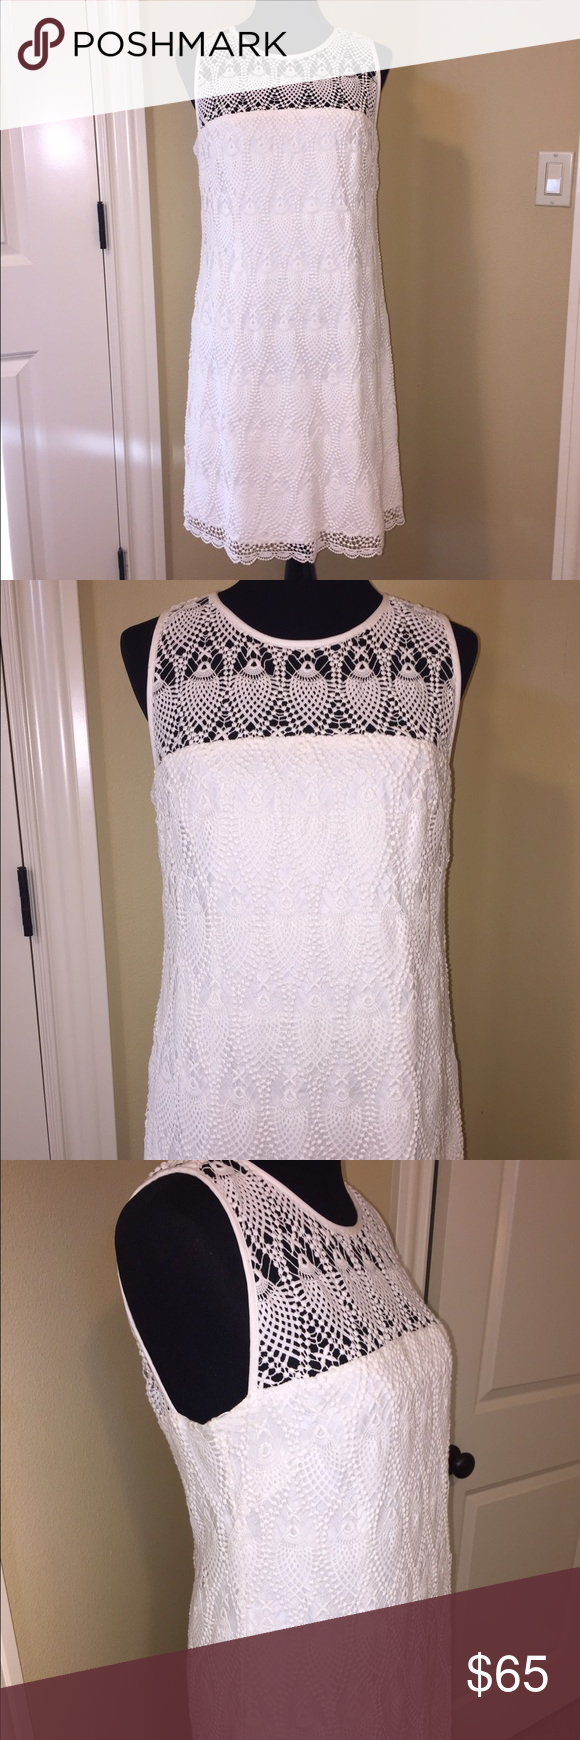 "Trina Turk Crochet Dress Gorgeous Trina Turk white Crochet dress. Lined. Button closure at neck and zips up back.   35.5"" length. 100% cotton. Size 10. Like new. Trina Turk Dresses"